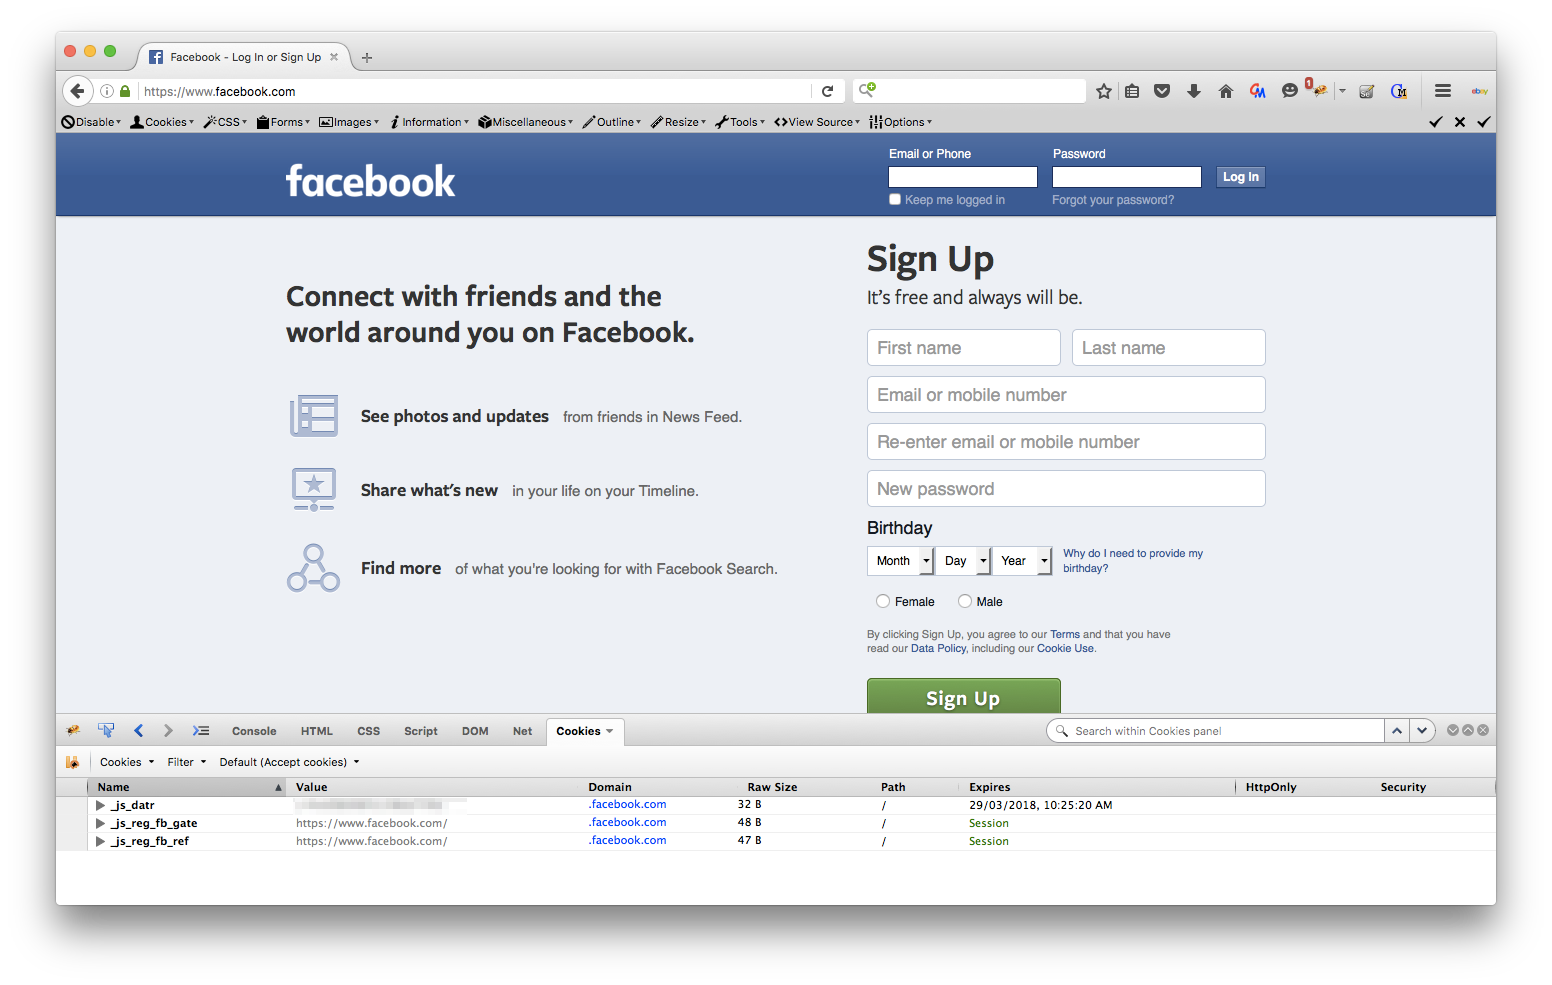 Firefox - facebook login page